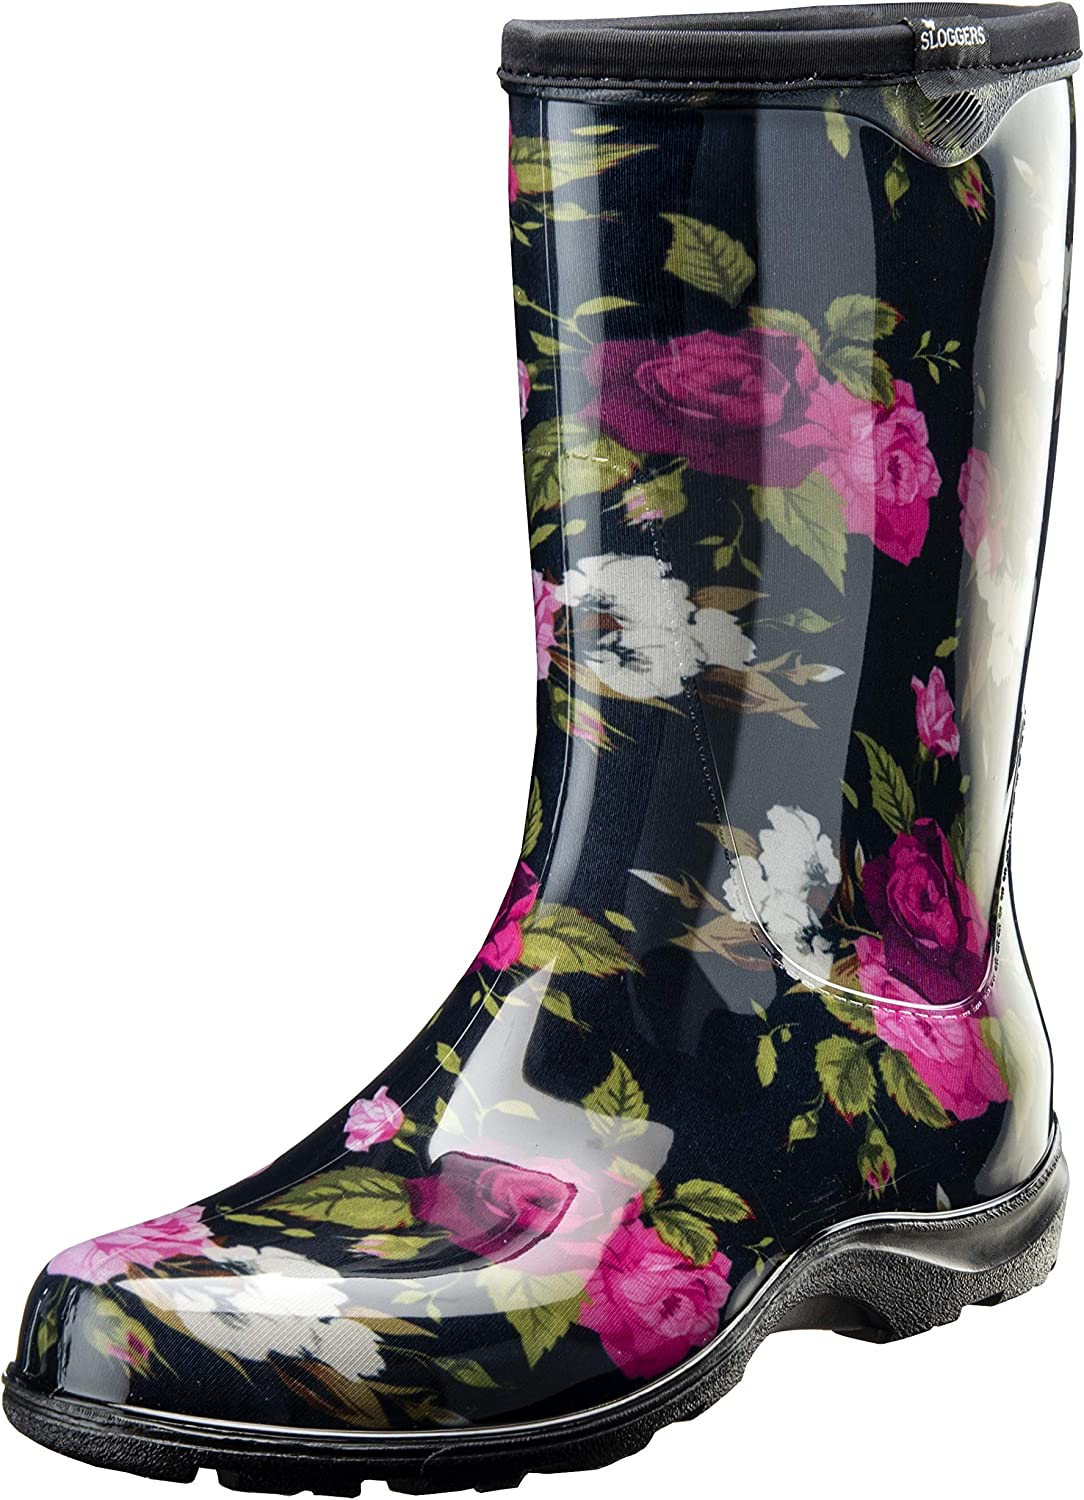 Sloggers Women's Waterproof Rain and Garden Boot with Comfort Insole (10, Roses)